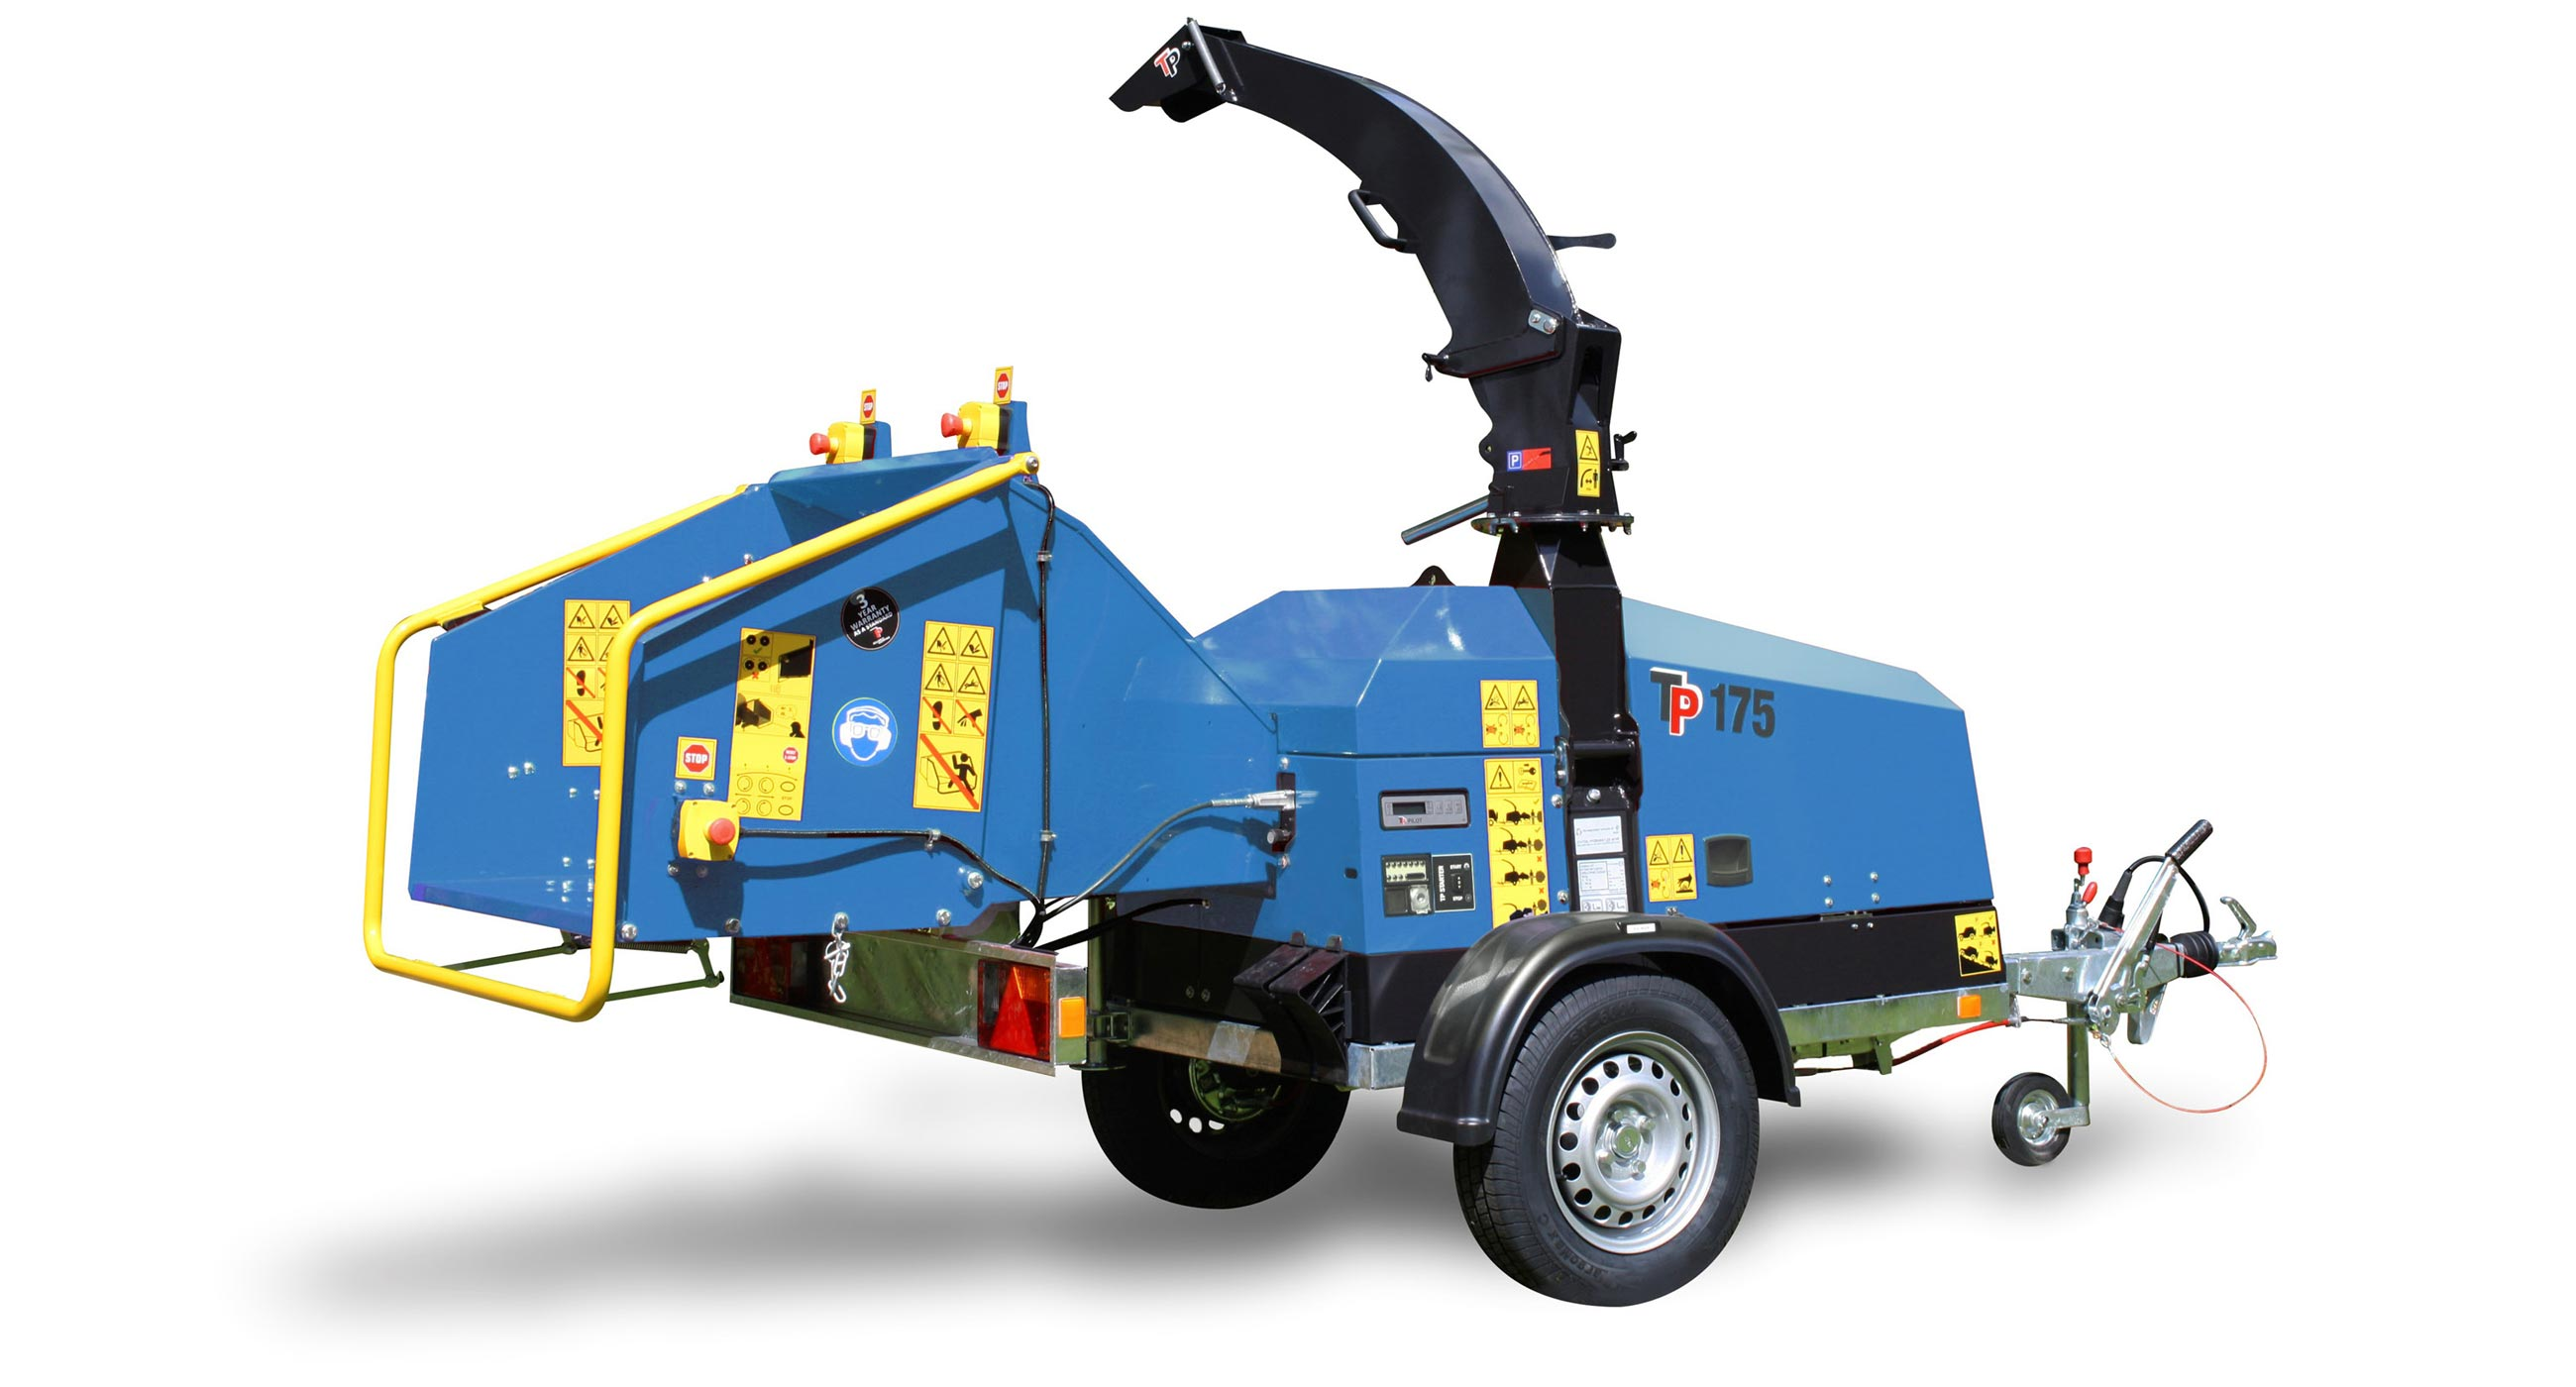 Linddana TP 175 Electric Chipper Mulcher